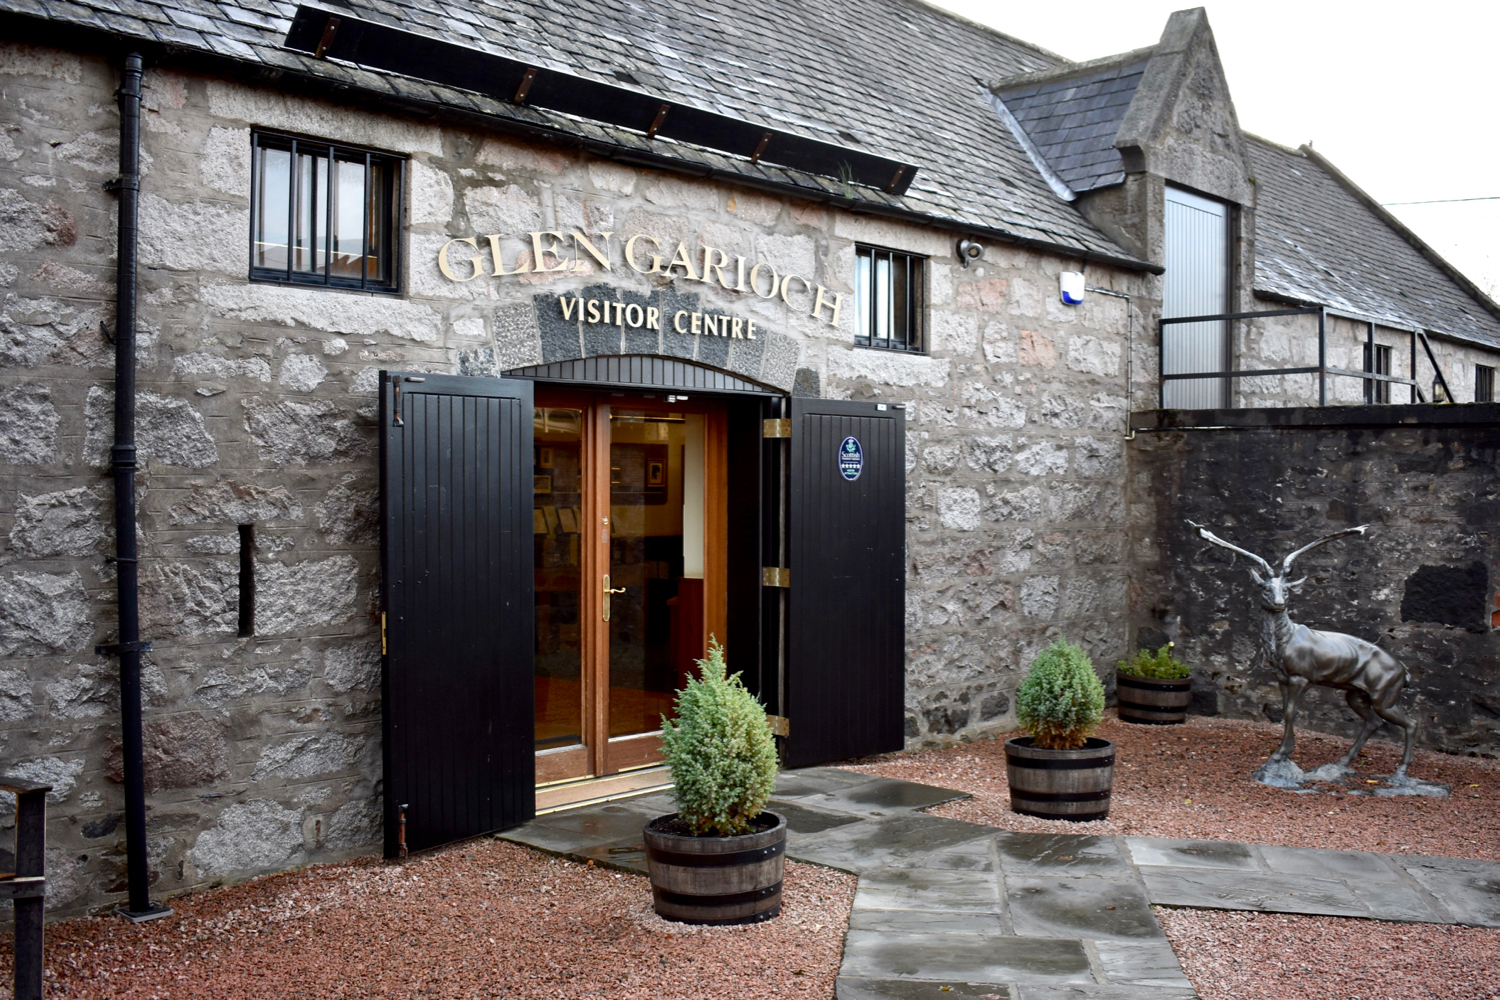 aberdeenshire distillery, aberdeenshire tour scotland, gastrogays aberdeen, glen garioch distillery, glen garioch oldmeldrum, glen garioch scotland, glen geery scotland, scotch whisky distillery tour blog, scotch whisky ireland, scotland whiskey distillery tour